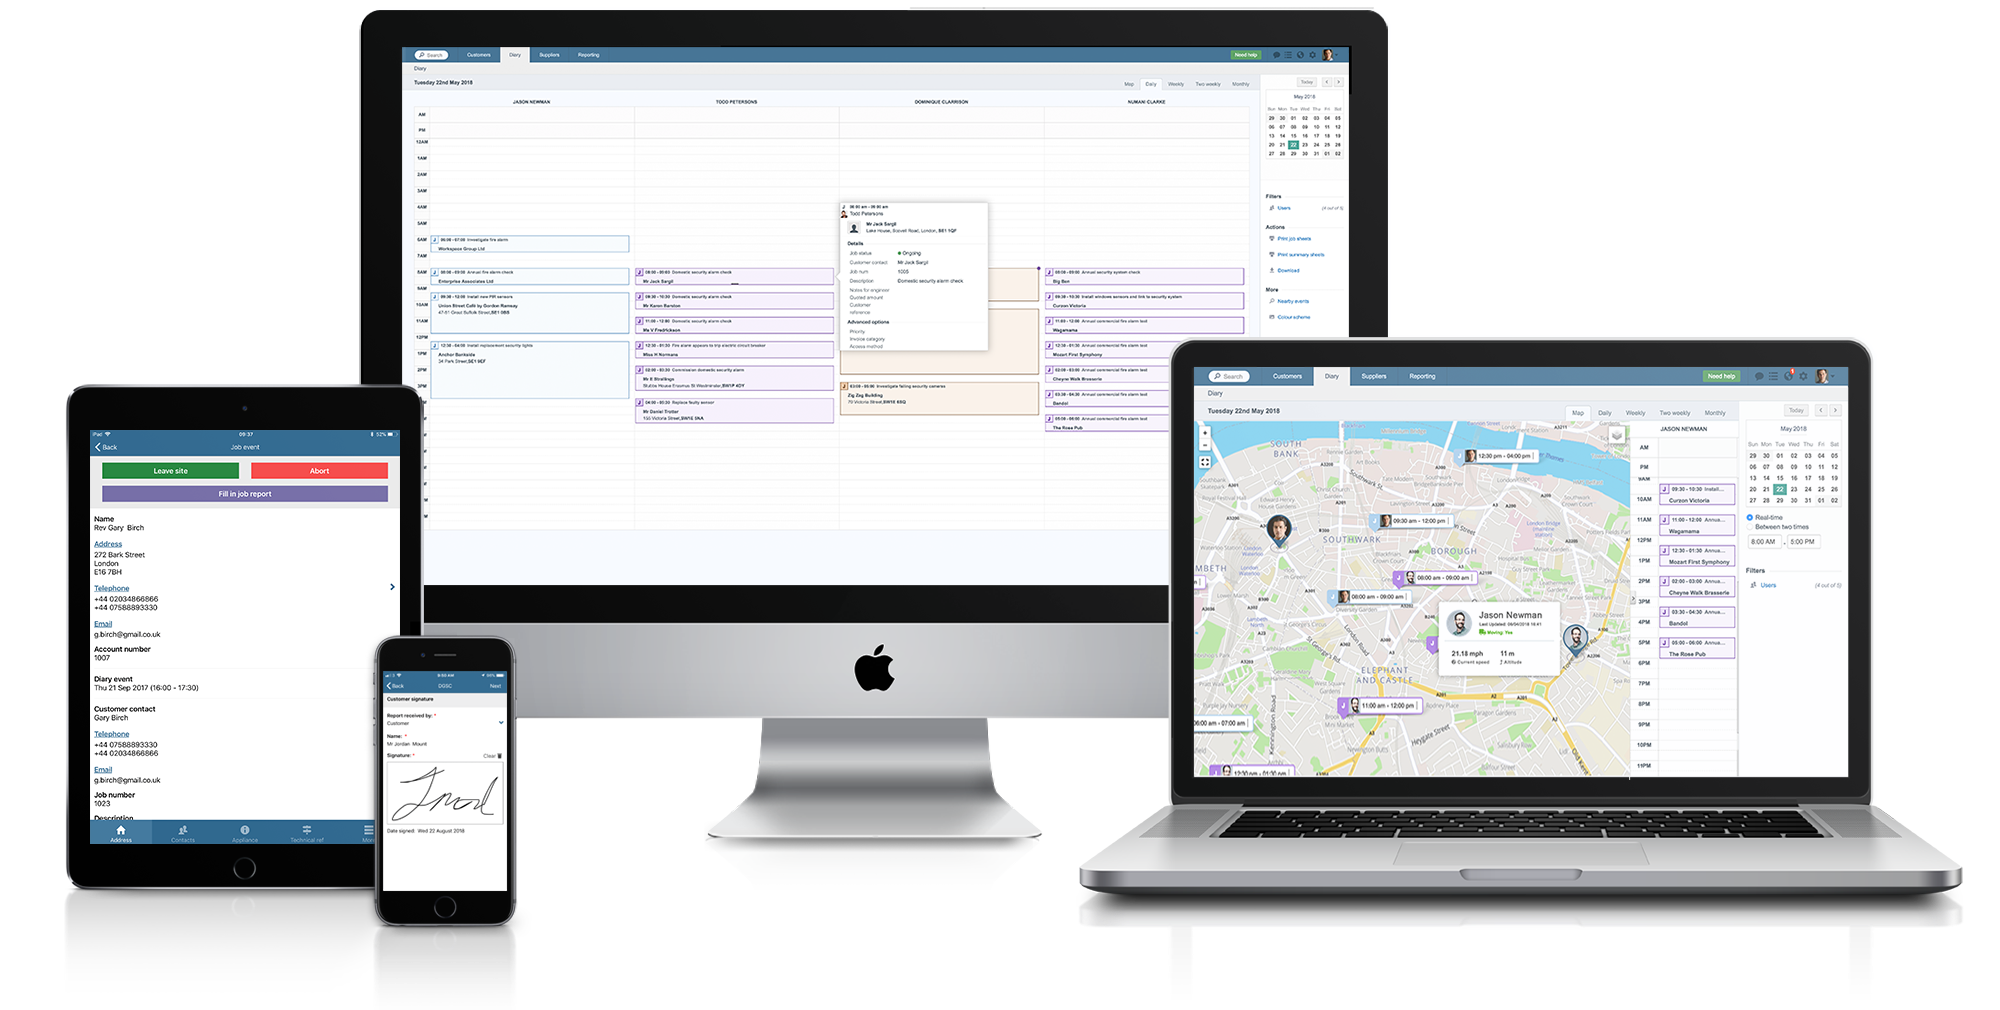 Commusoft's Paperless office plan on devices